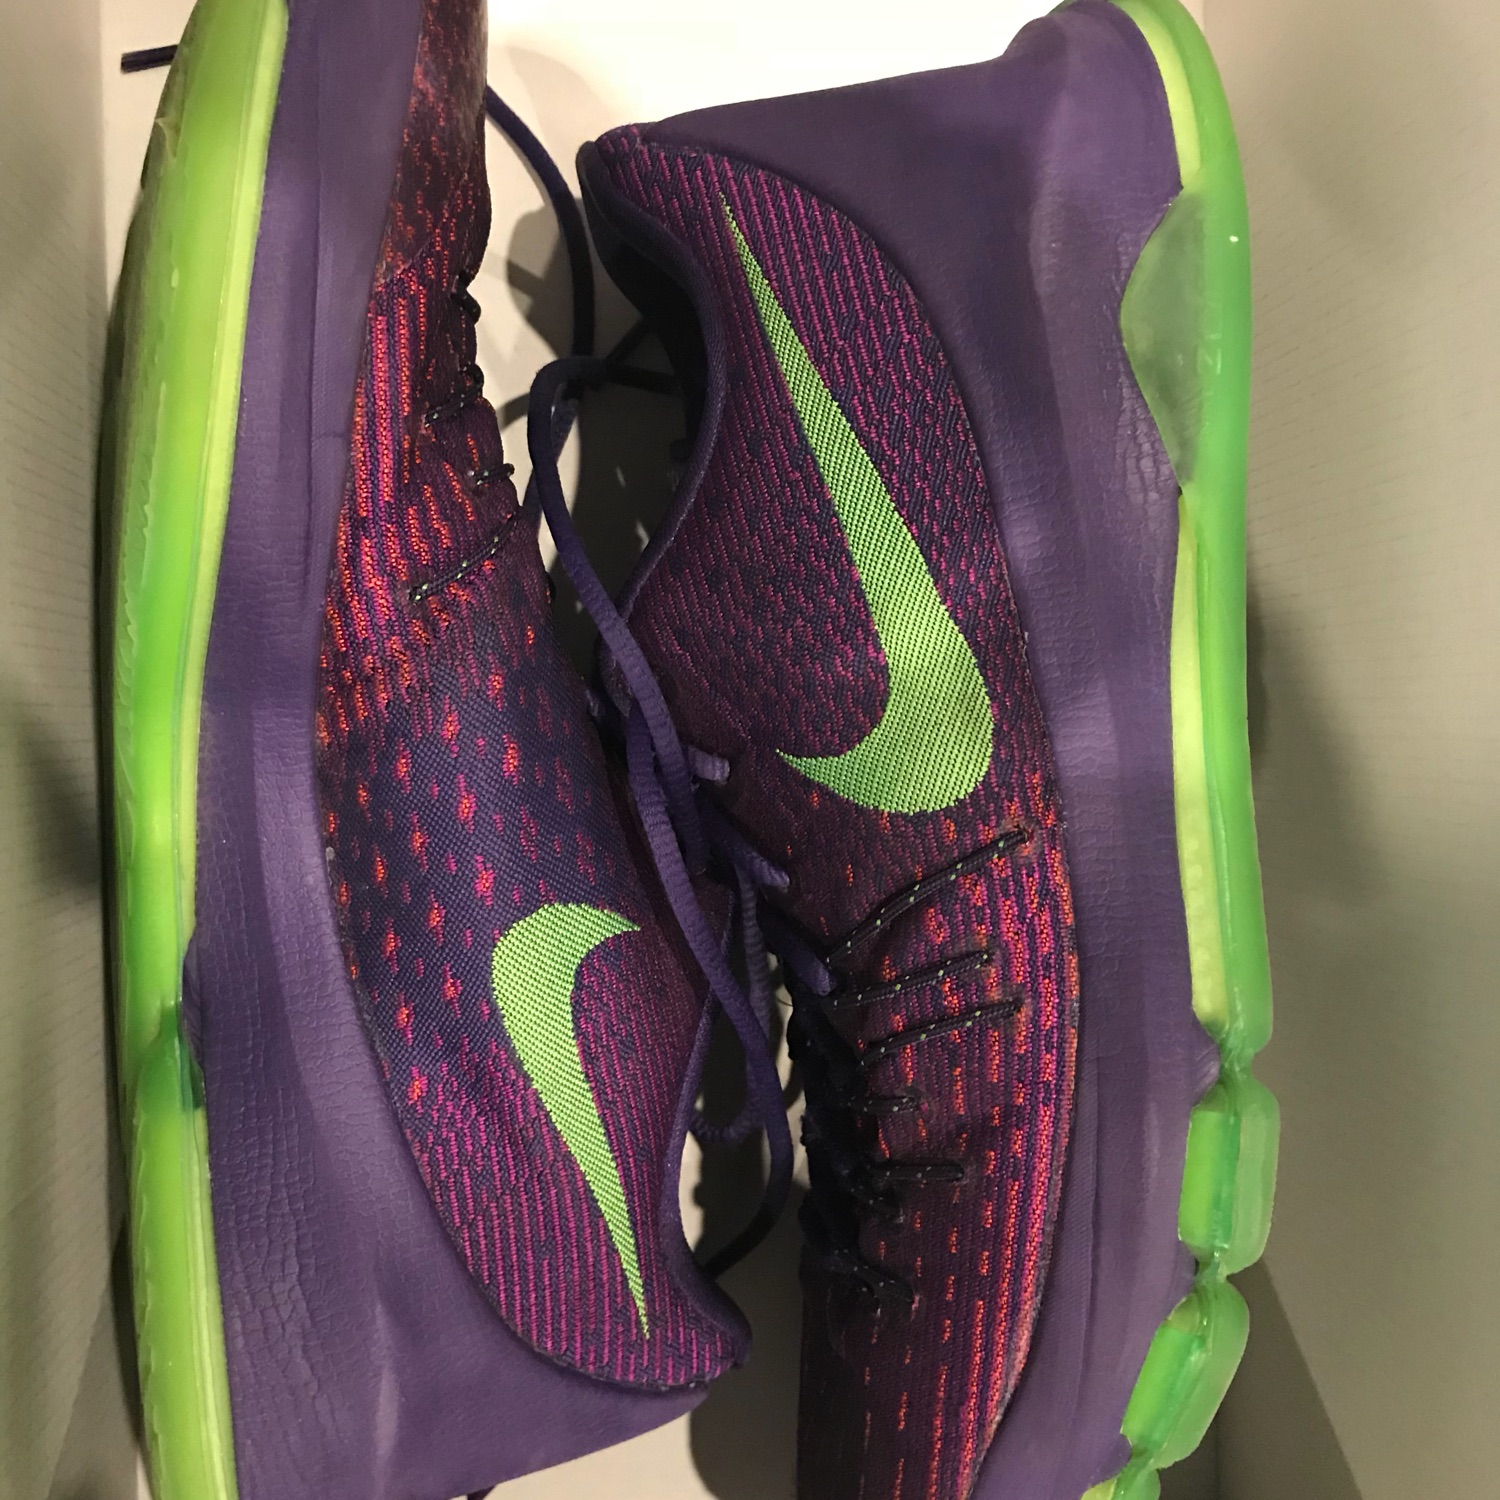 sale retailer 8476a 28f9a Nike Kd 8 Purple And Green